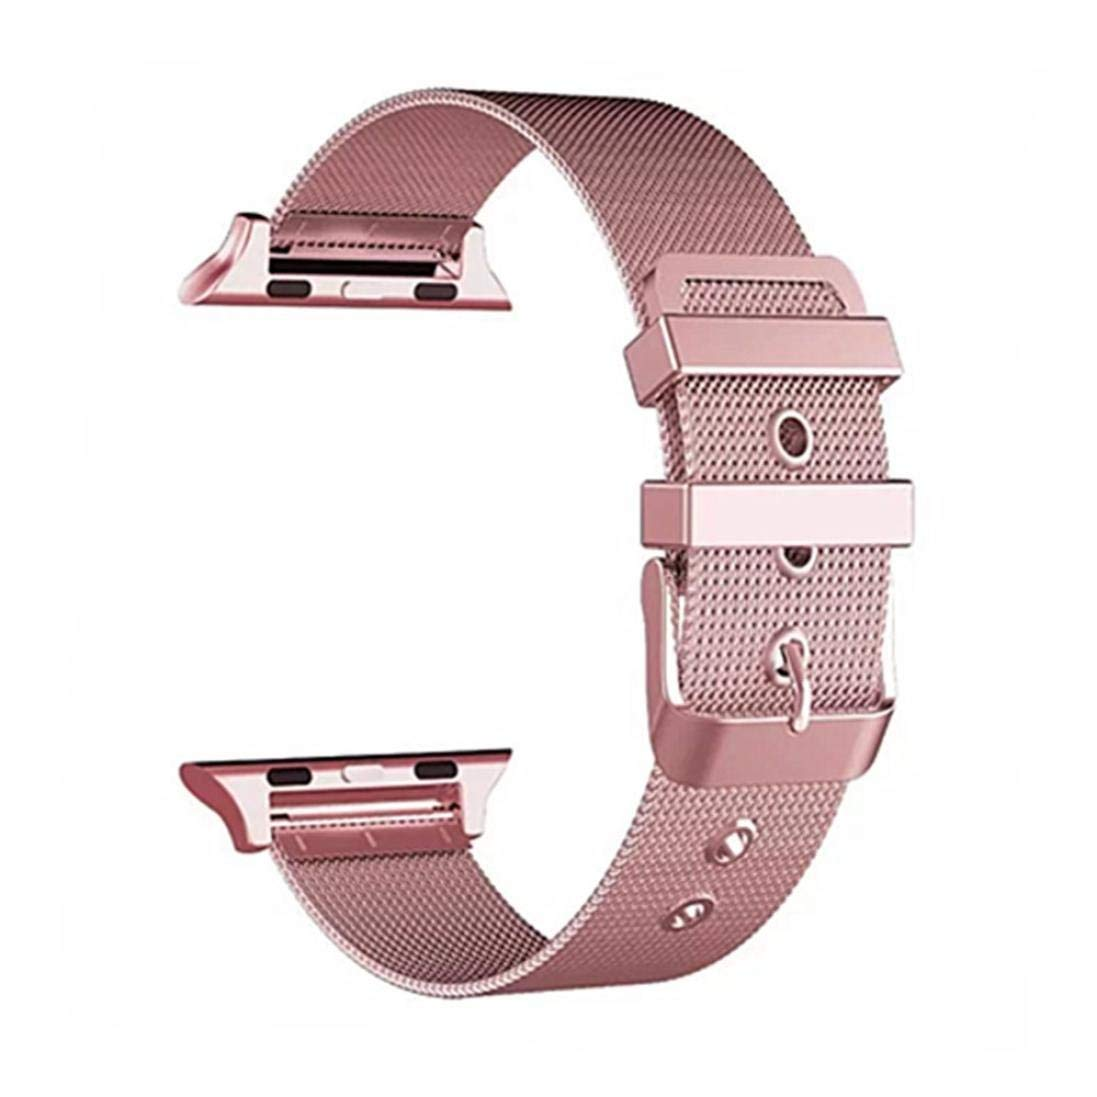 Stainless Steel straps,RTYou(TM) Durable Milanese Loop Stainless Steel Buckle Watch Strap Band For Apple Watch 38mm